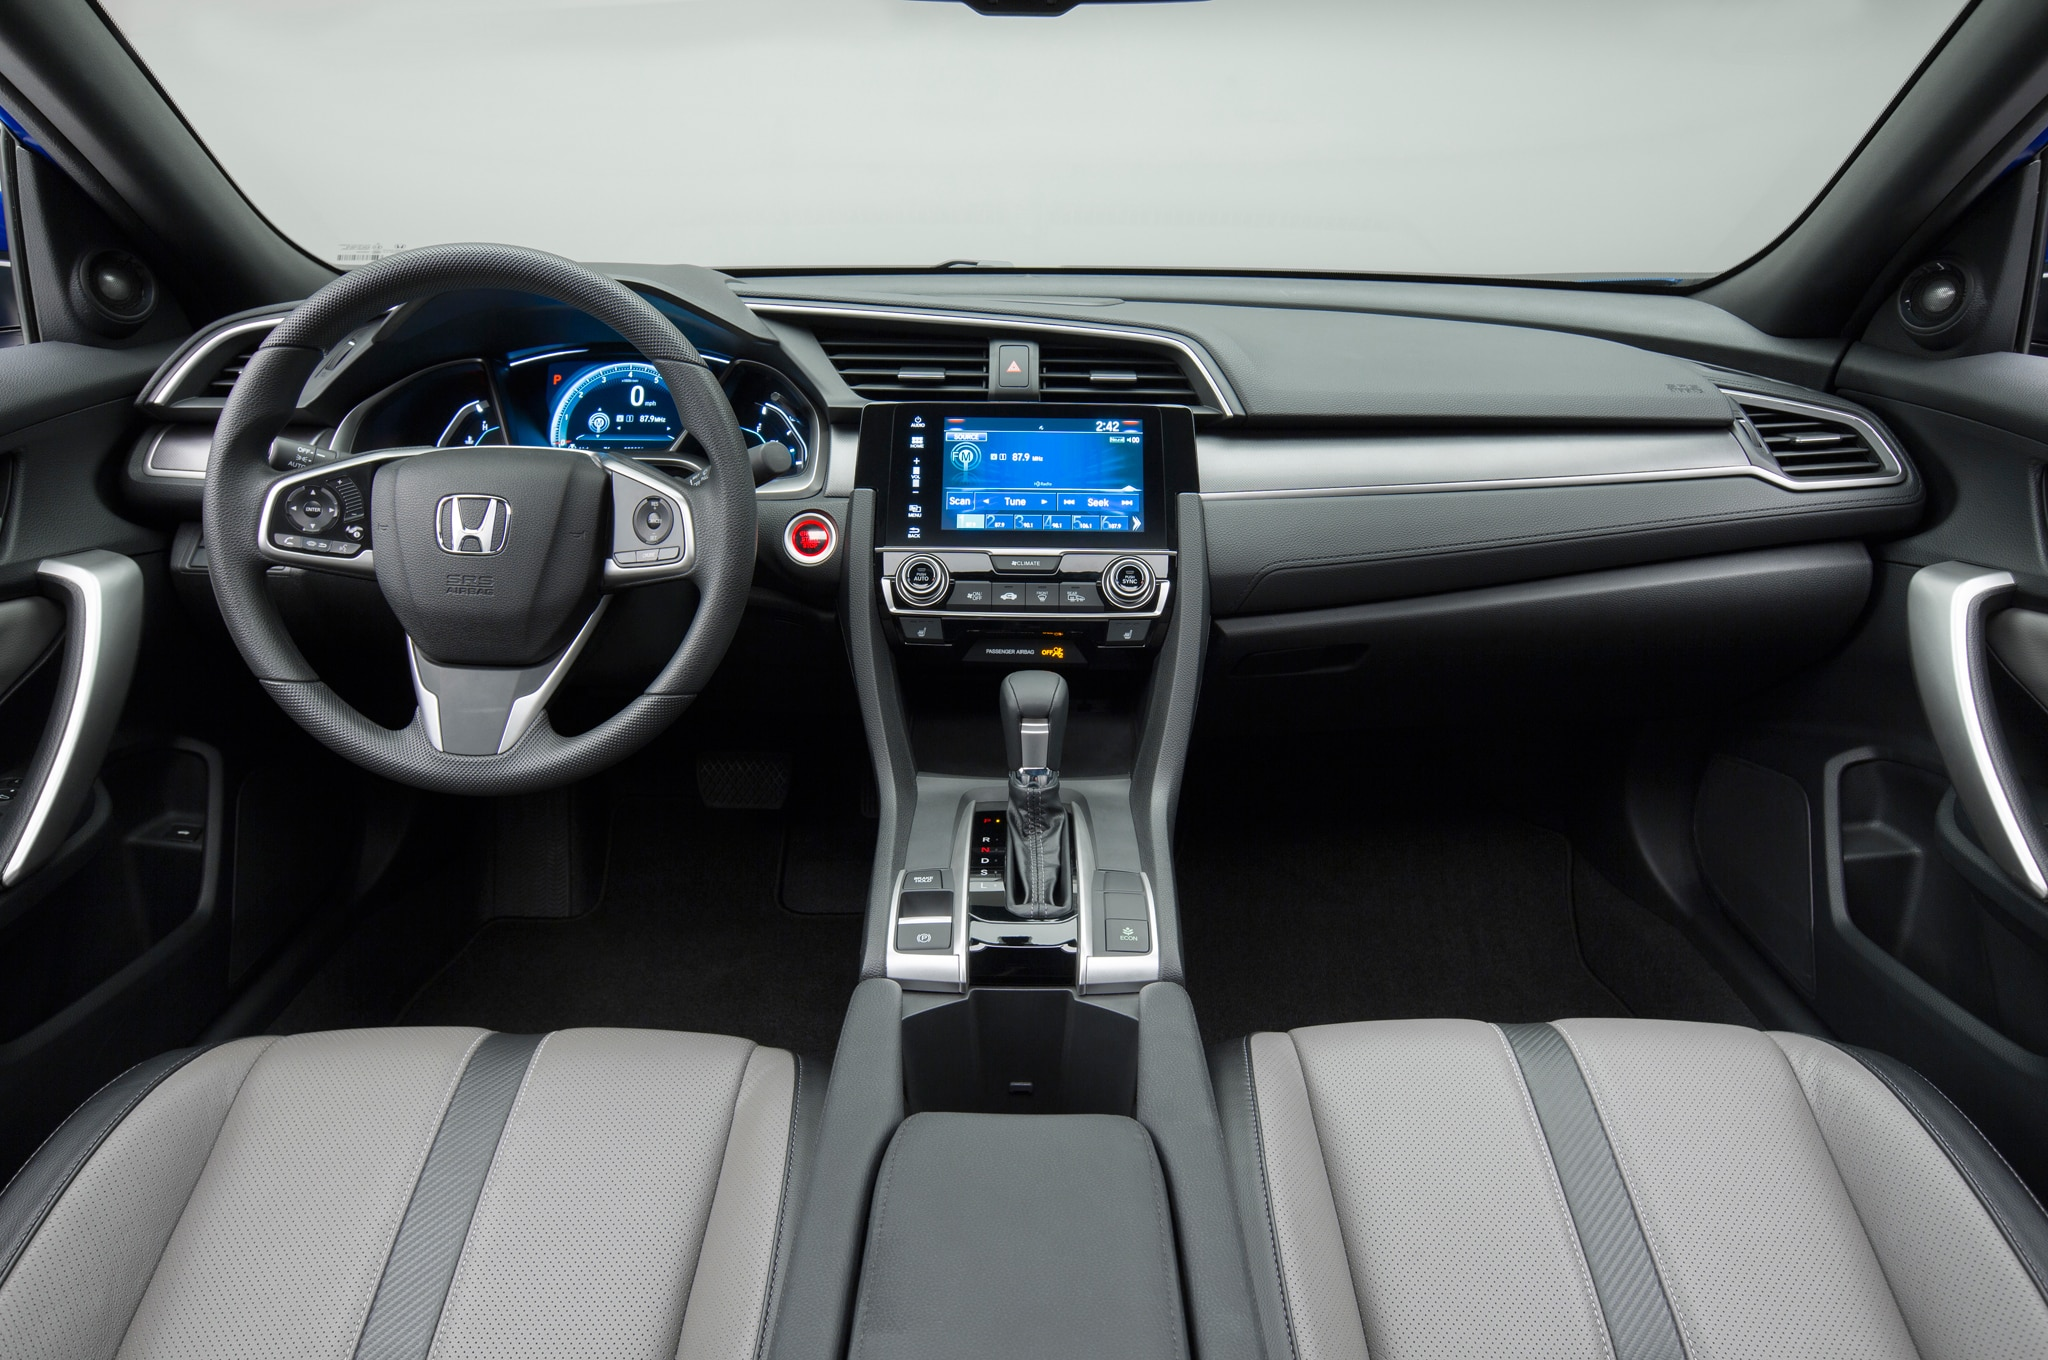 2016 honda civic coupe debuts with sportier styling - 2016 honda civic si coupe interior ...